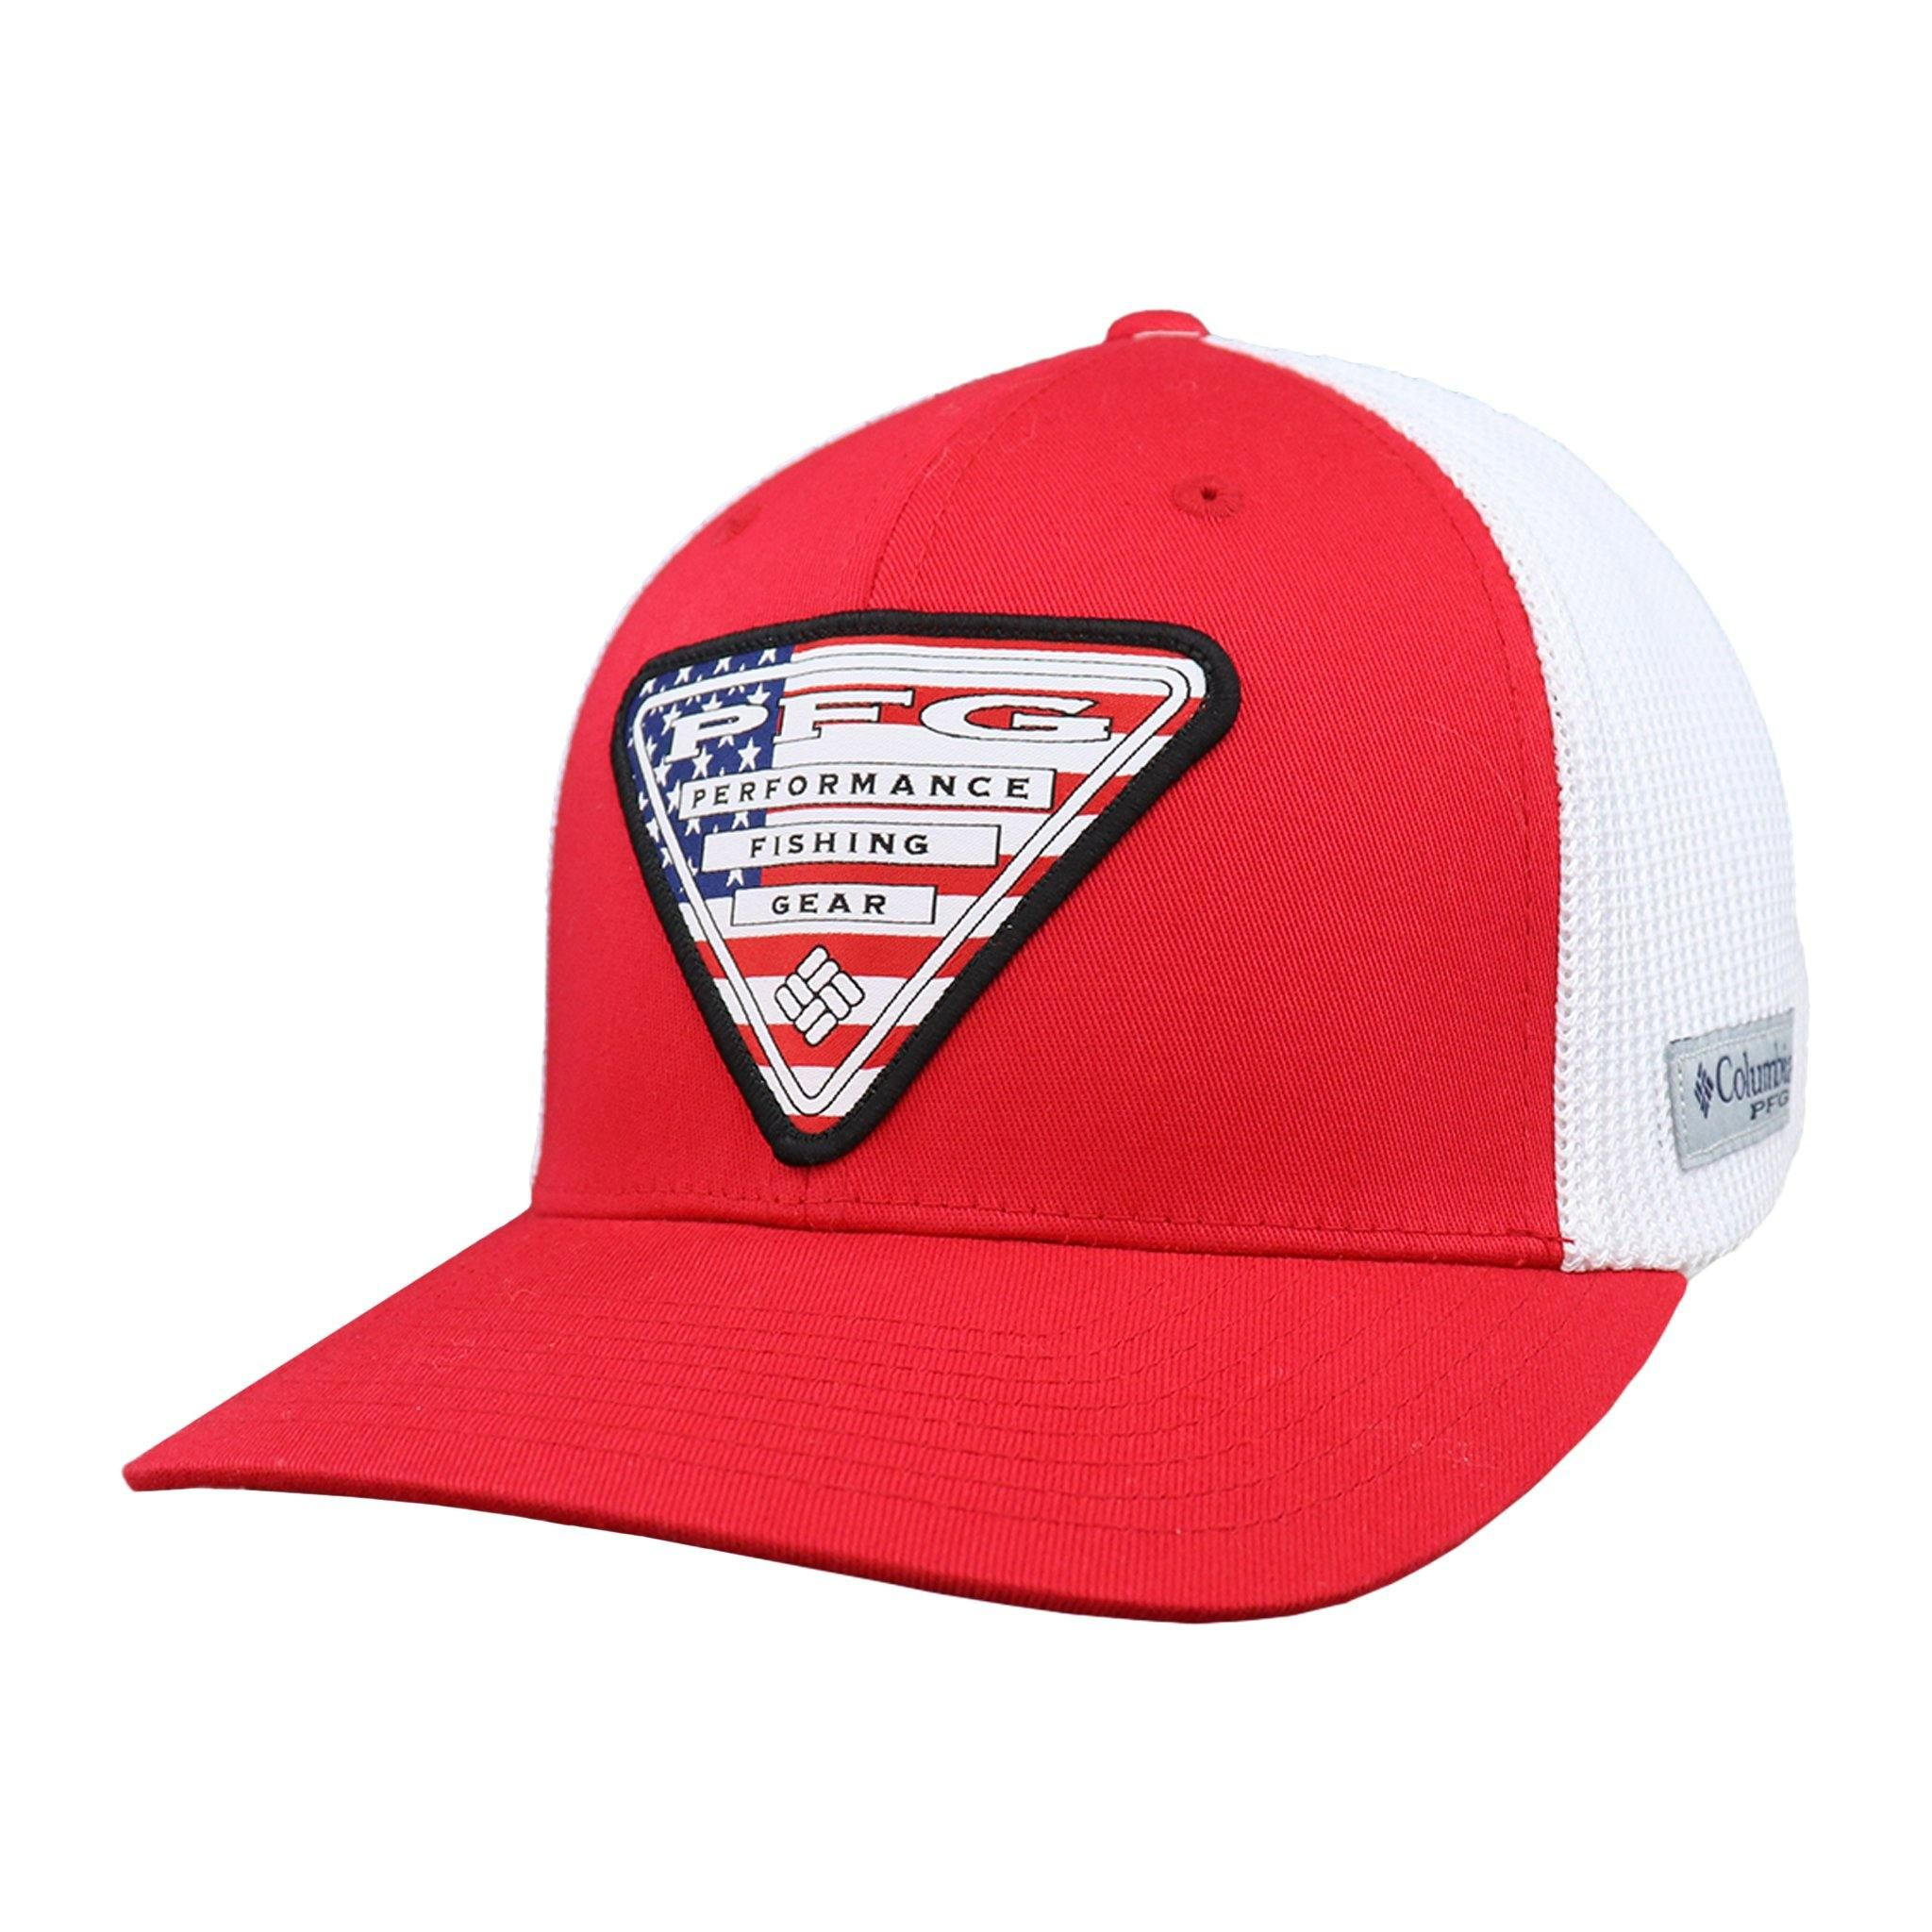 Budweiser Columbia Pfg Mesh Stateside Hat In 2021 Country Hats Columbia Hat Hats